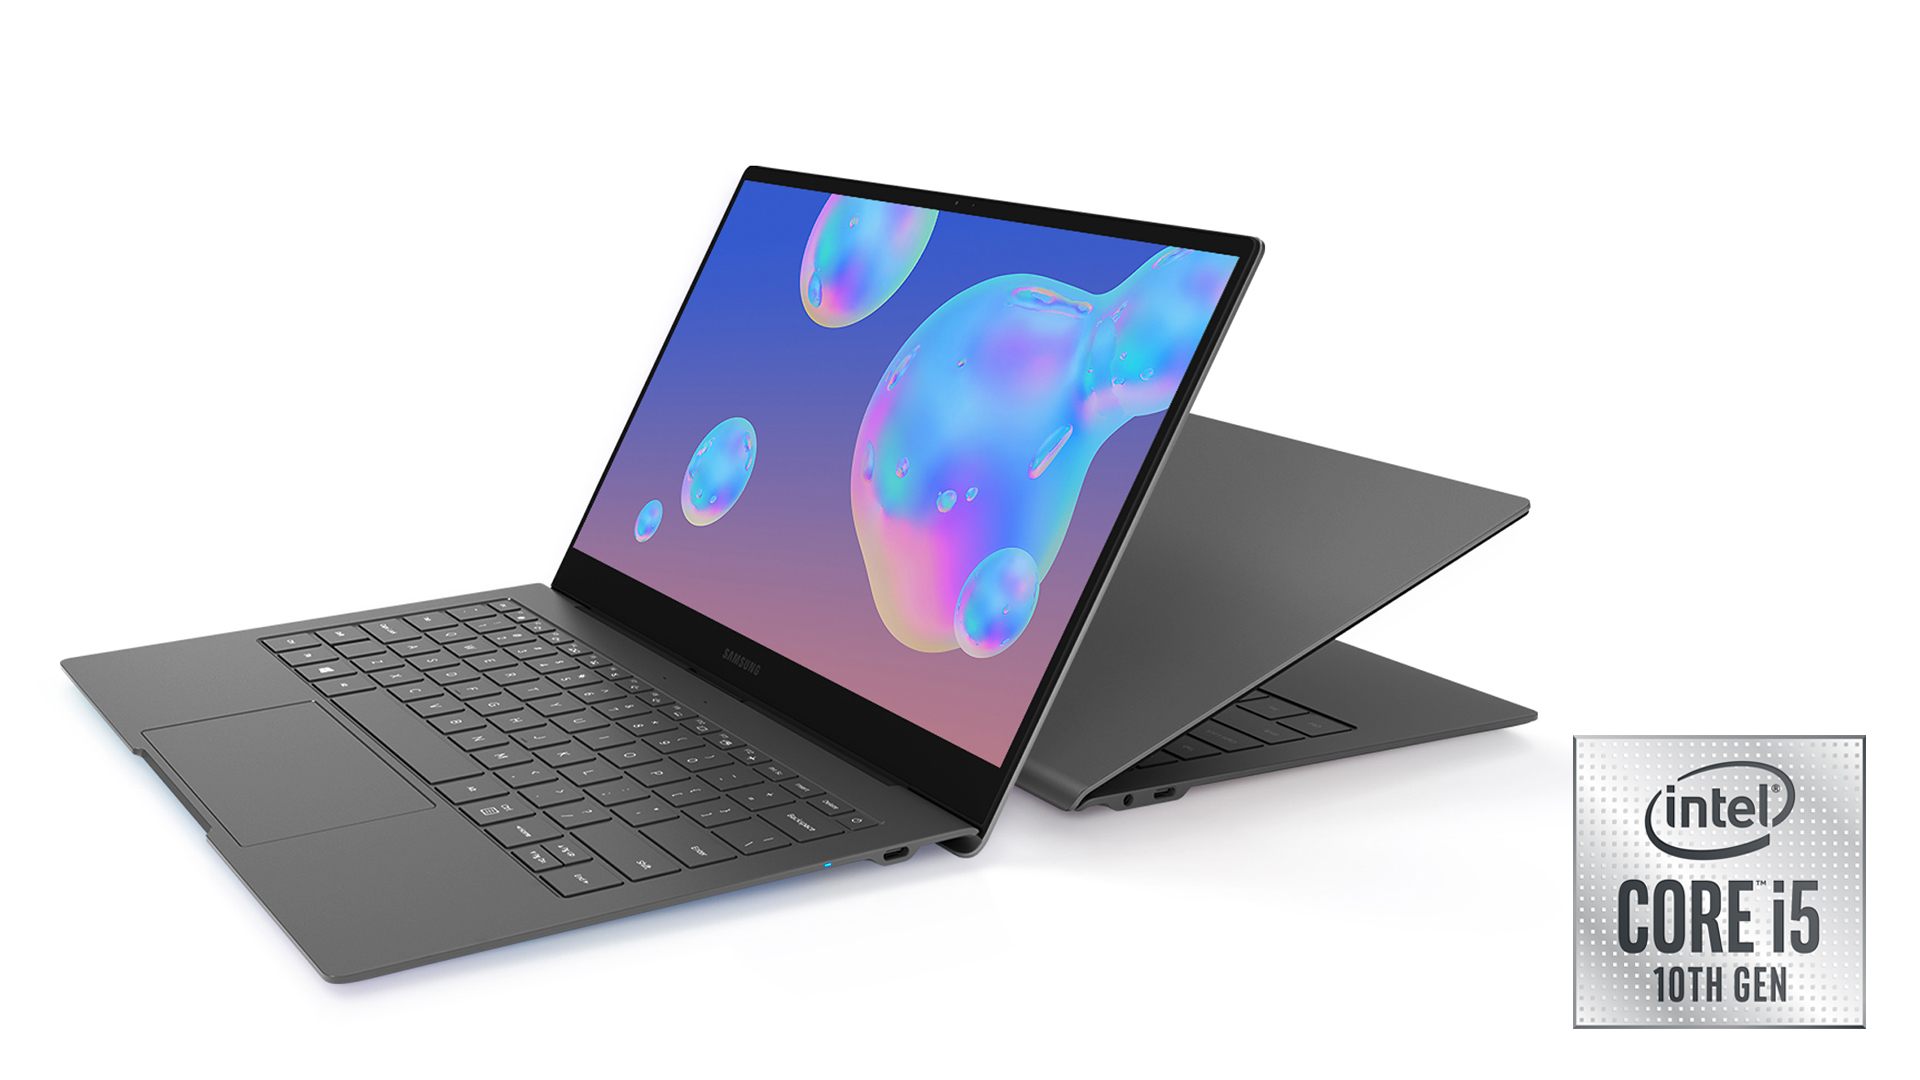 Claim a free pair of £129 AKG Y500 Wireless headphones with the Samsung Galaxy Book S from Currys